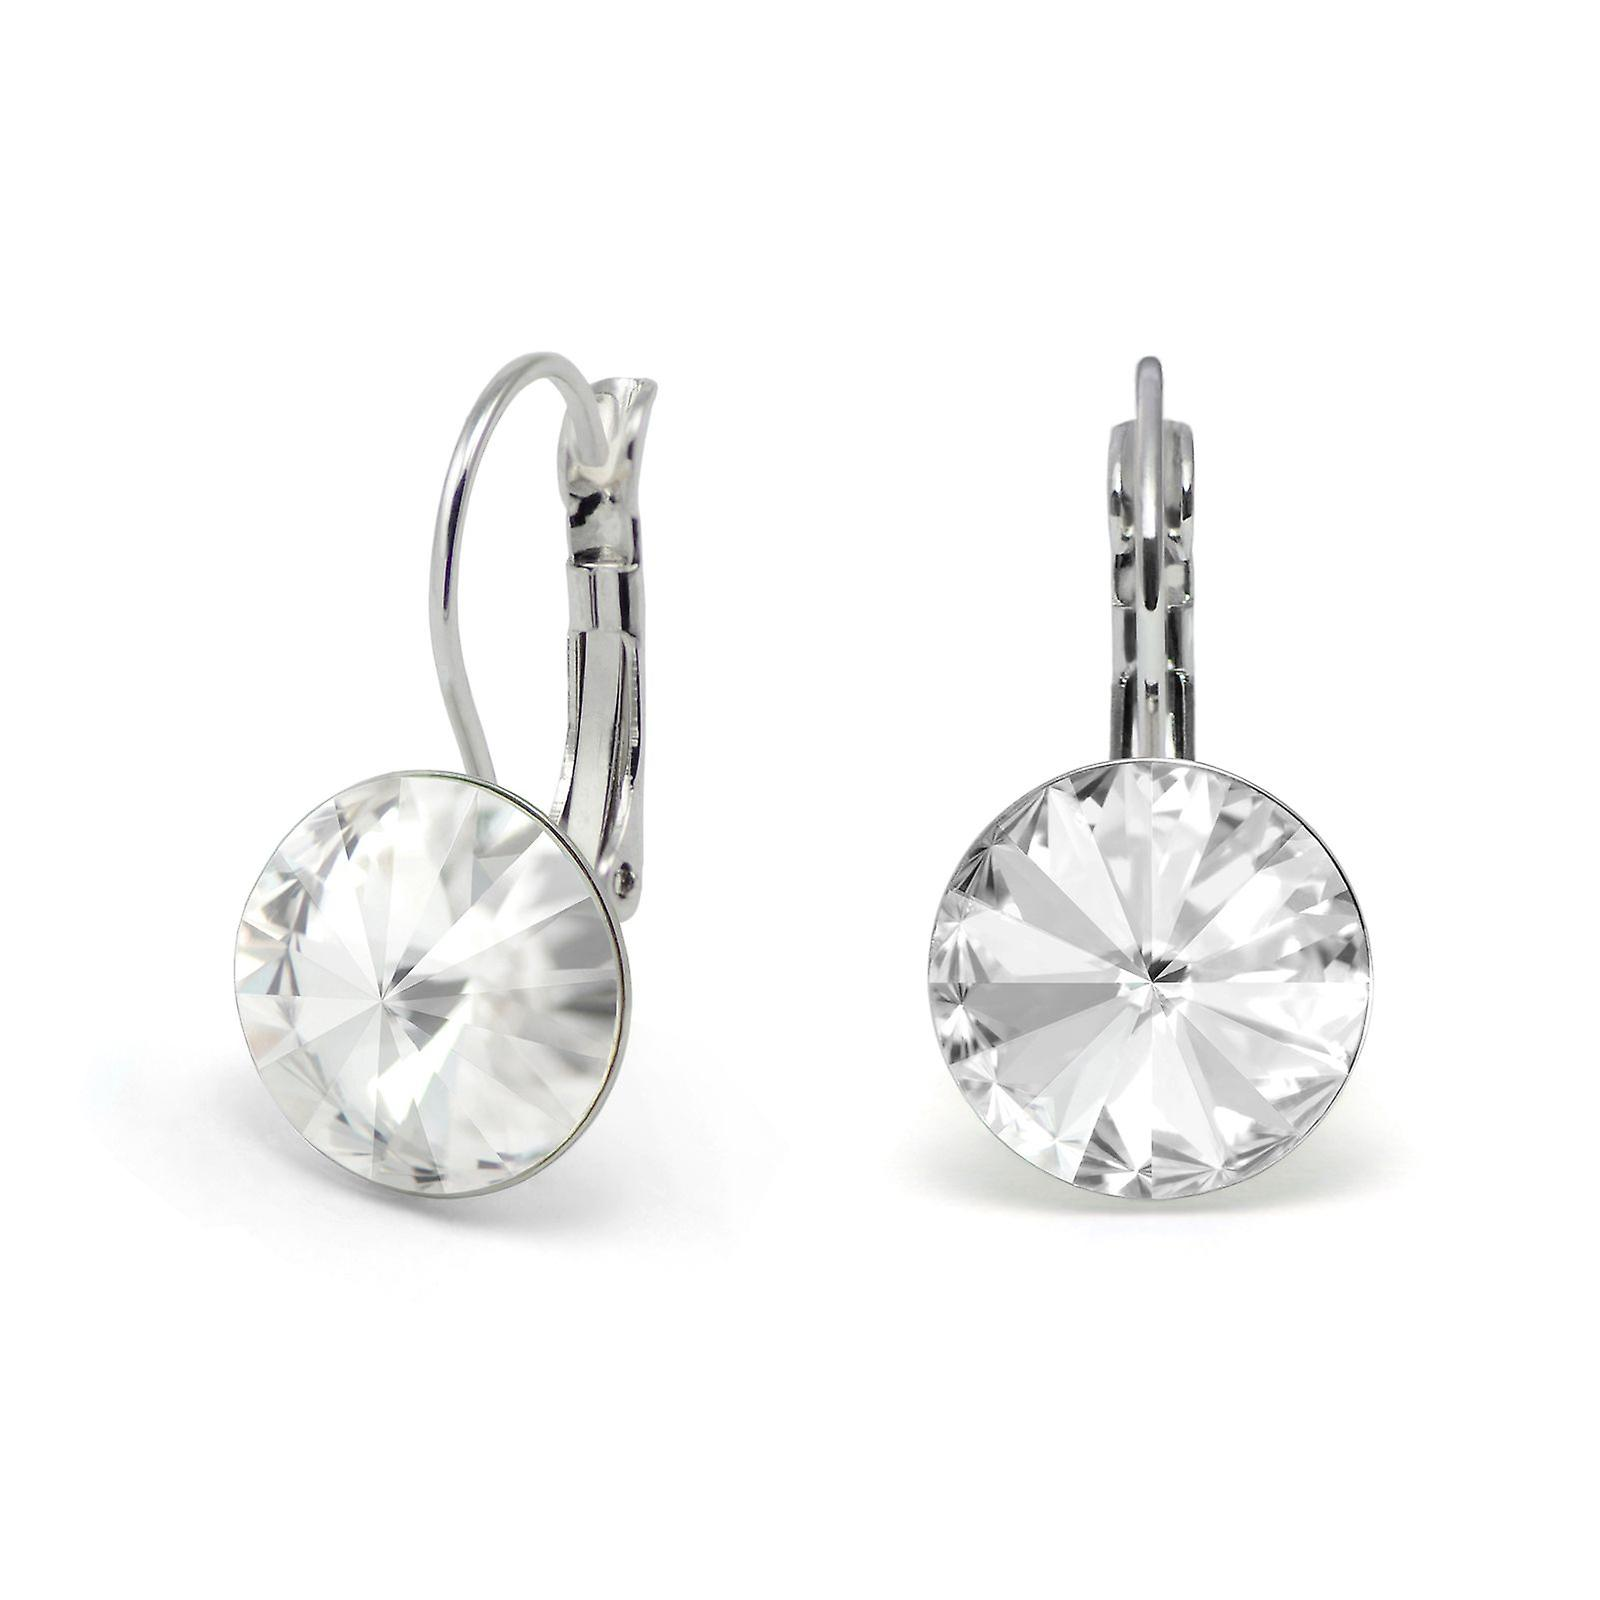 Crystal earrings EMB 1.4